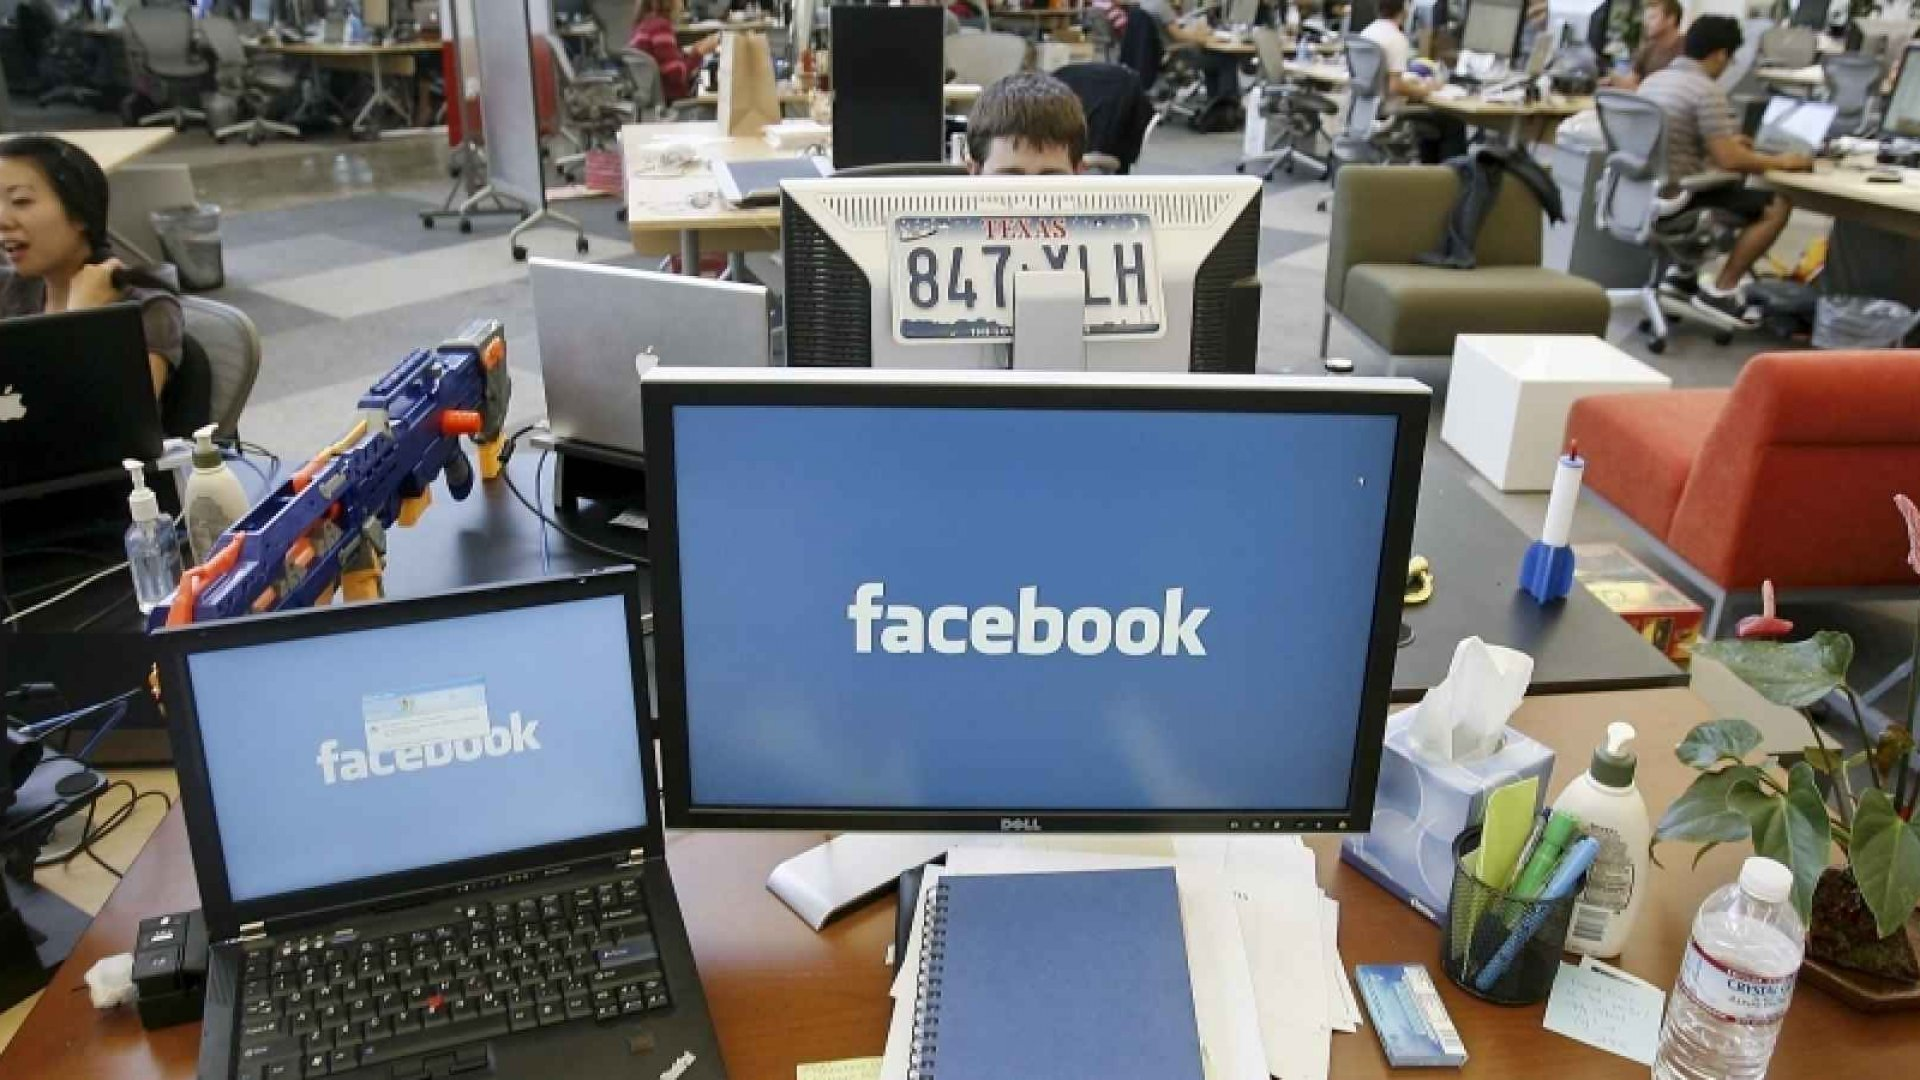 Remember When Facebook Was Banned at the Office? Meet Facebook at Work